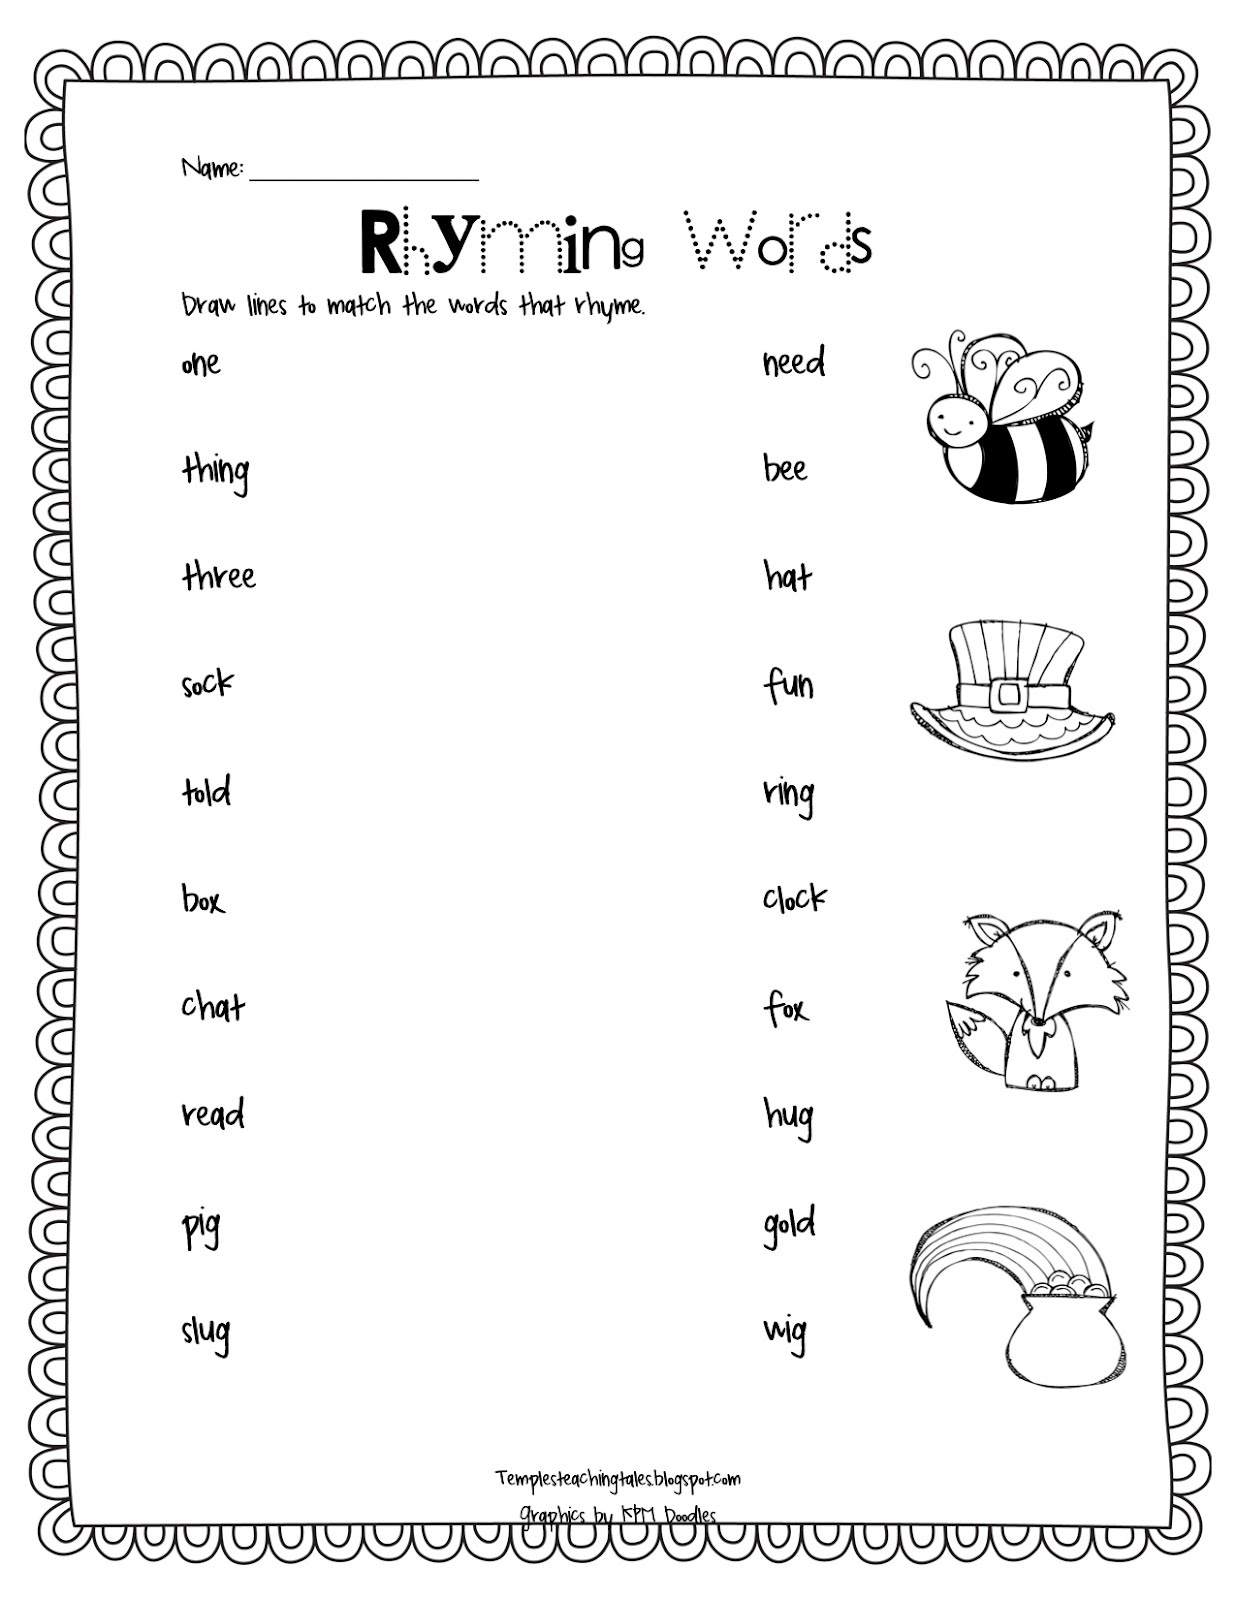 Worksheet Worksheet On Rhyming Words rhyming words worksheets for kindergarten photo album worksheet word first grade joomlti